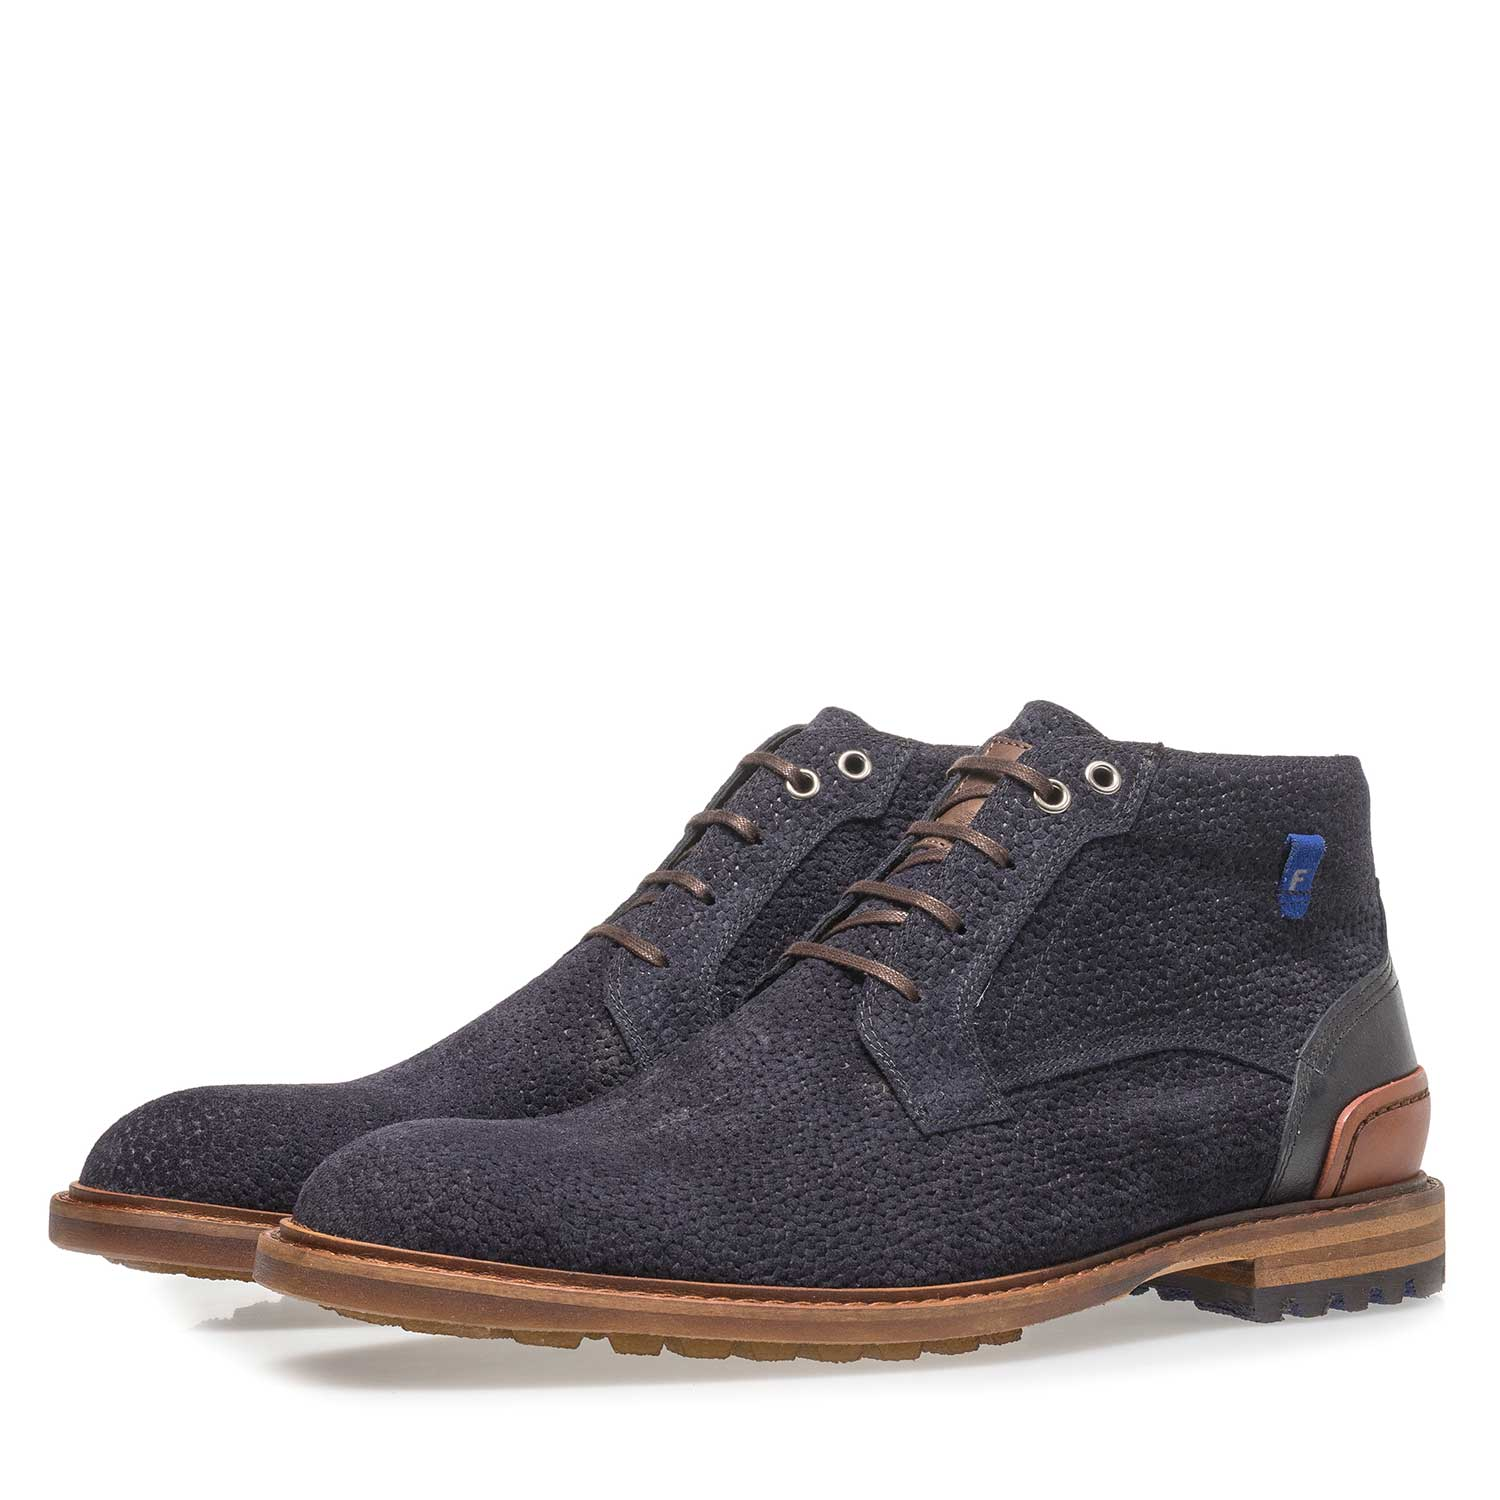 20228/25 - Dark blue printed suede leather lace boot